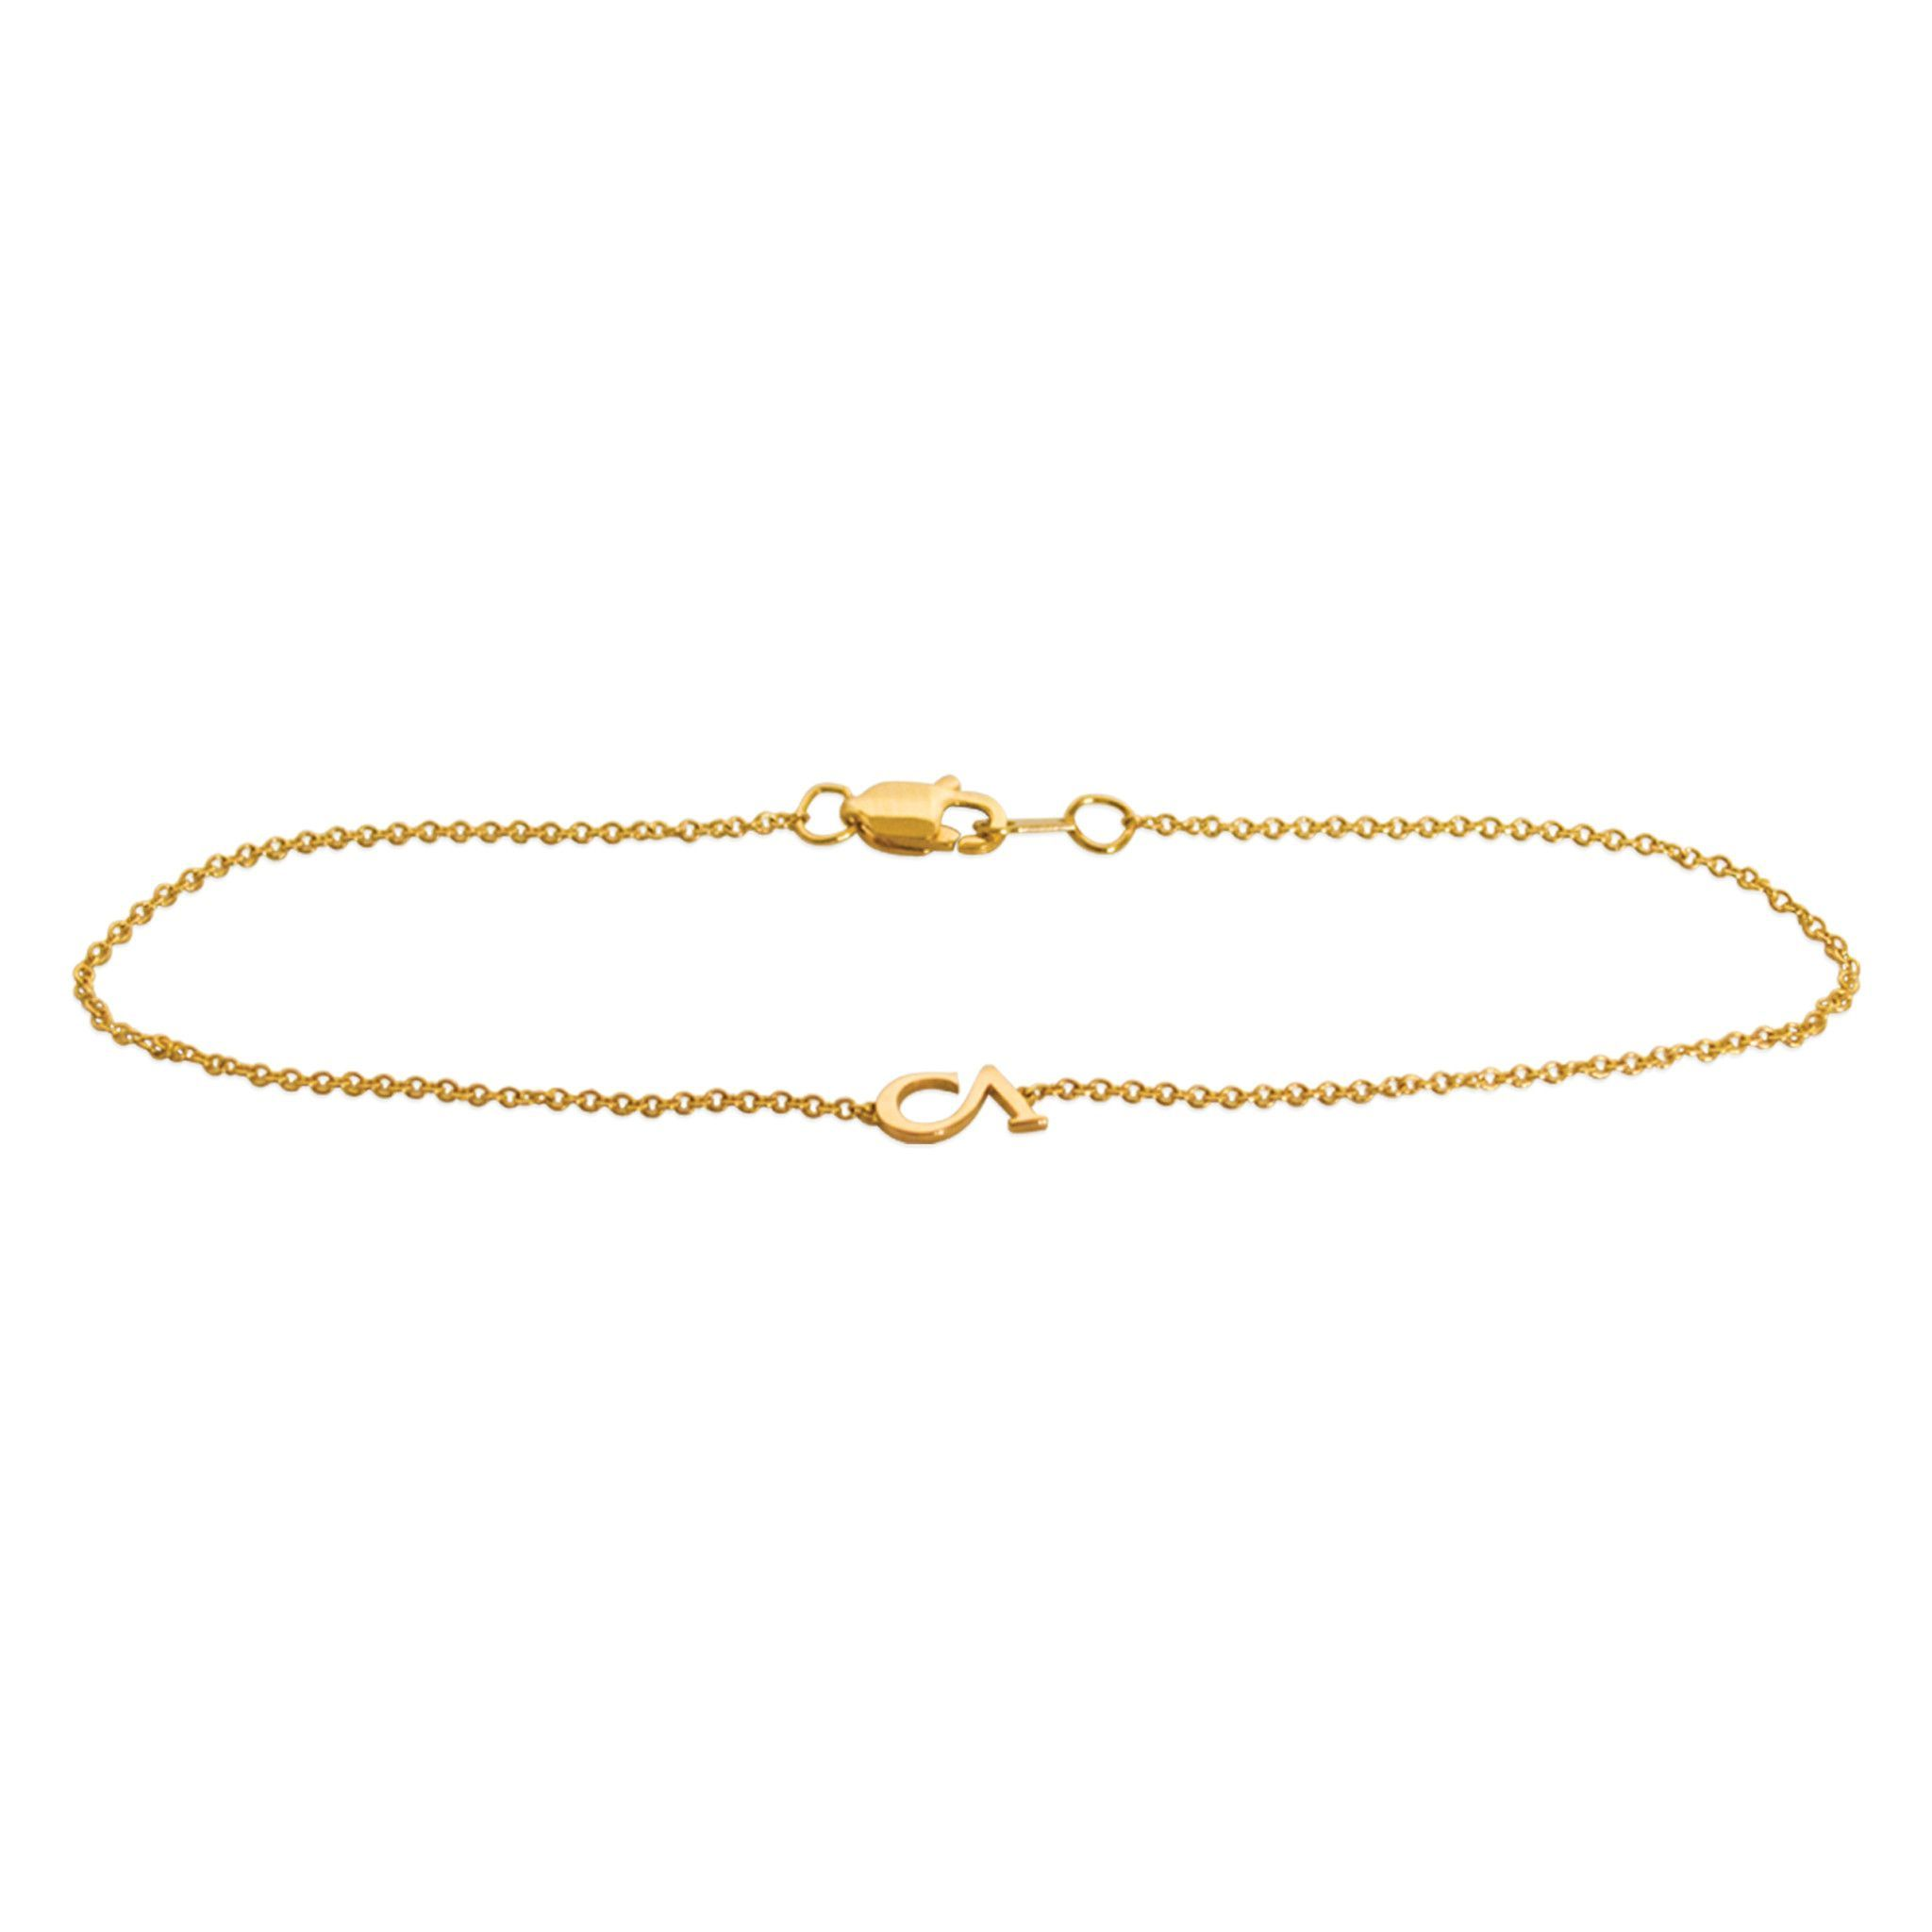 chain personality aliexpress gold on bracelets com karat group from jewelry accessories item alibaba link men bracelet s in